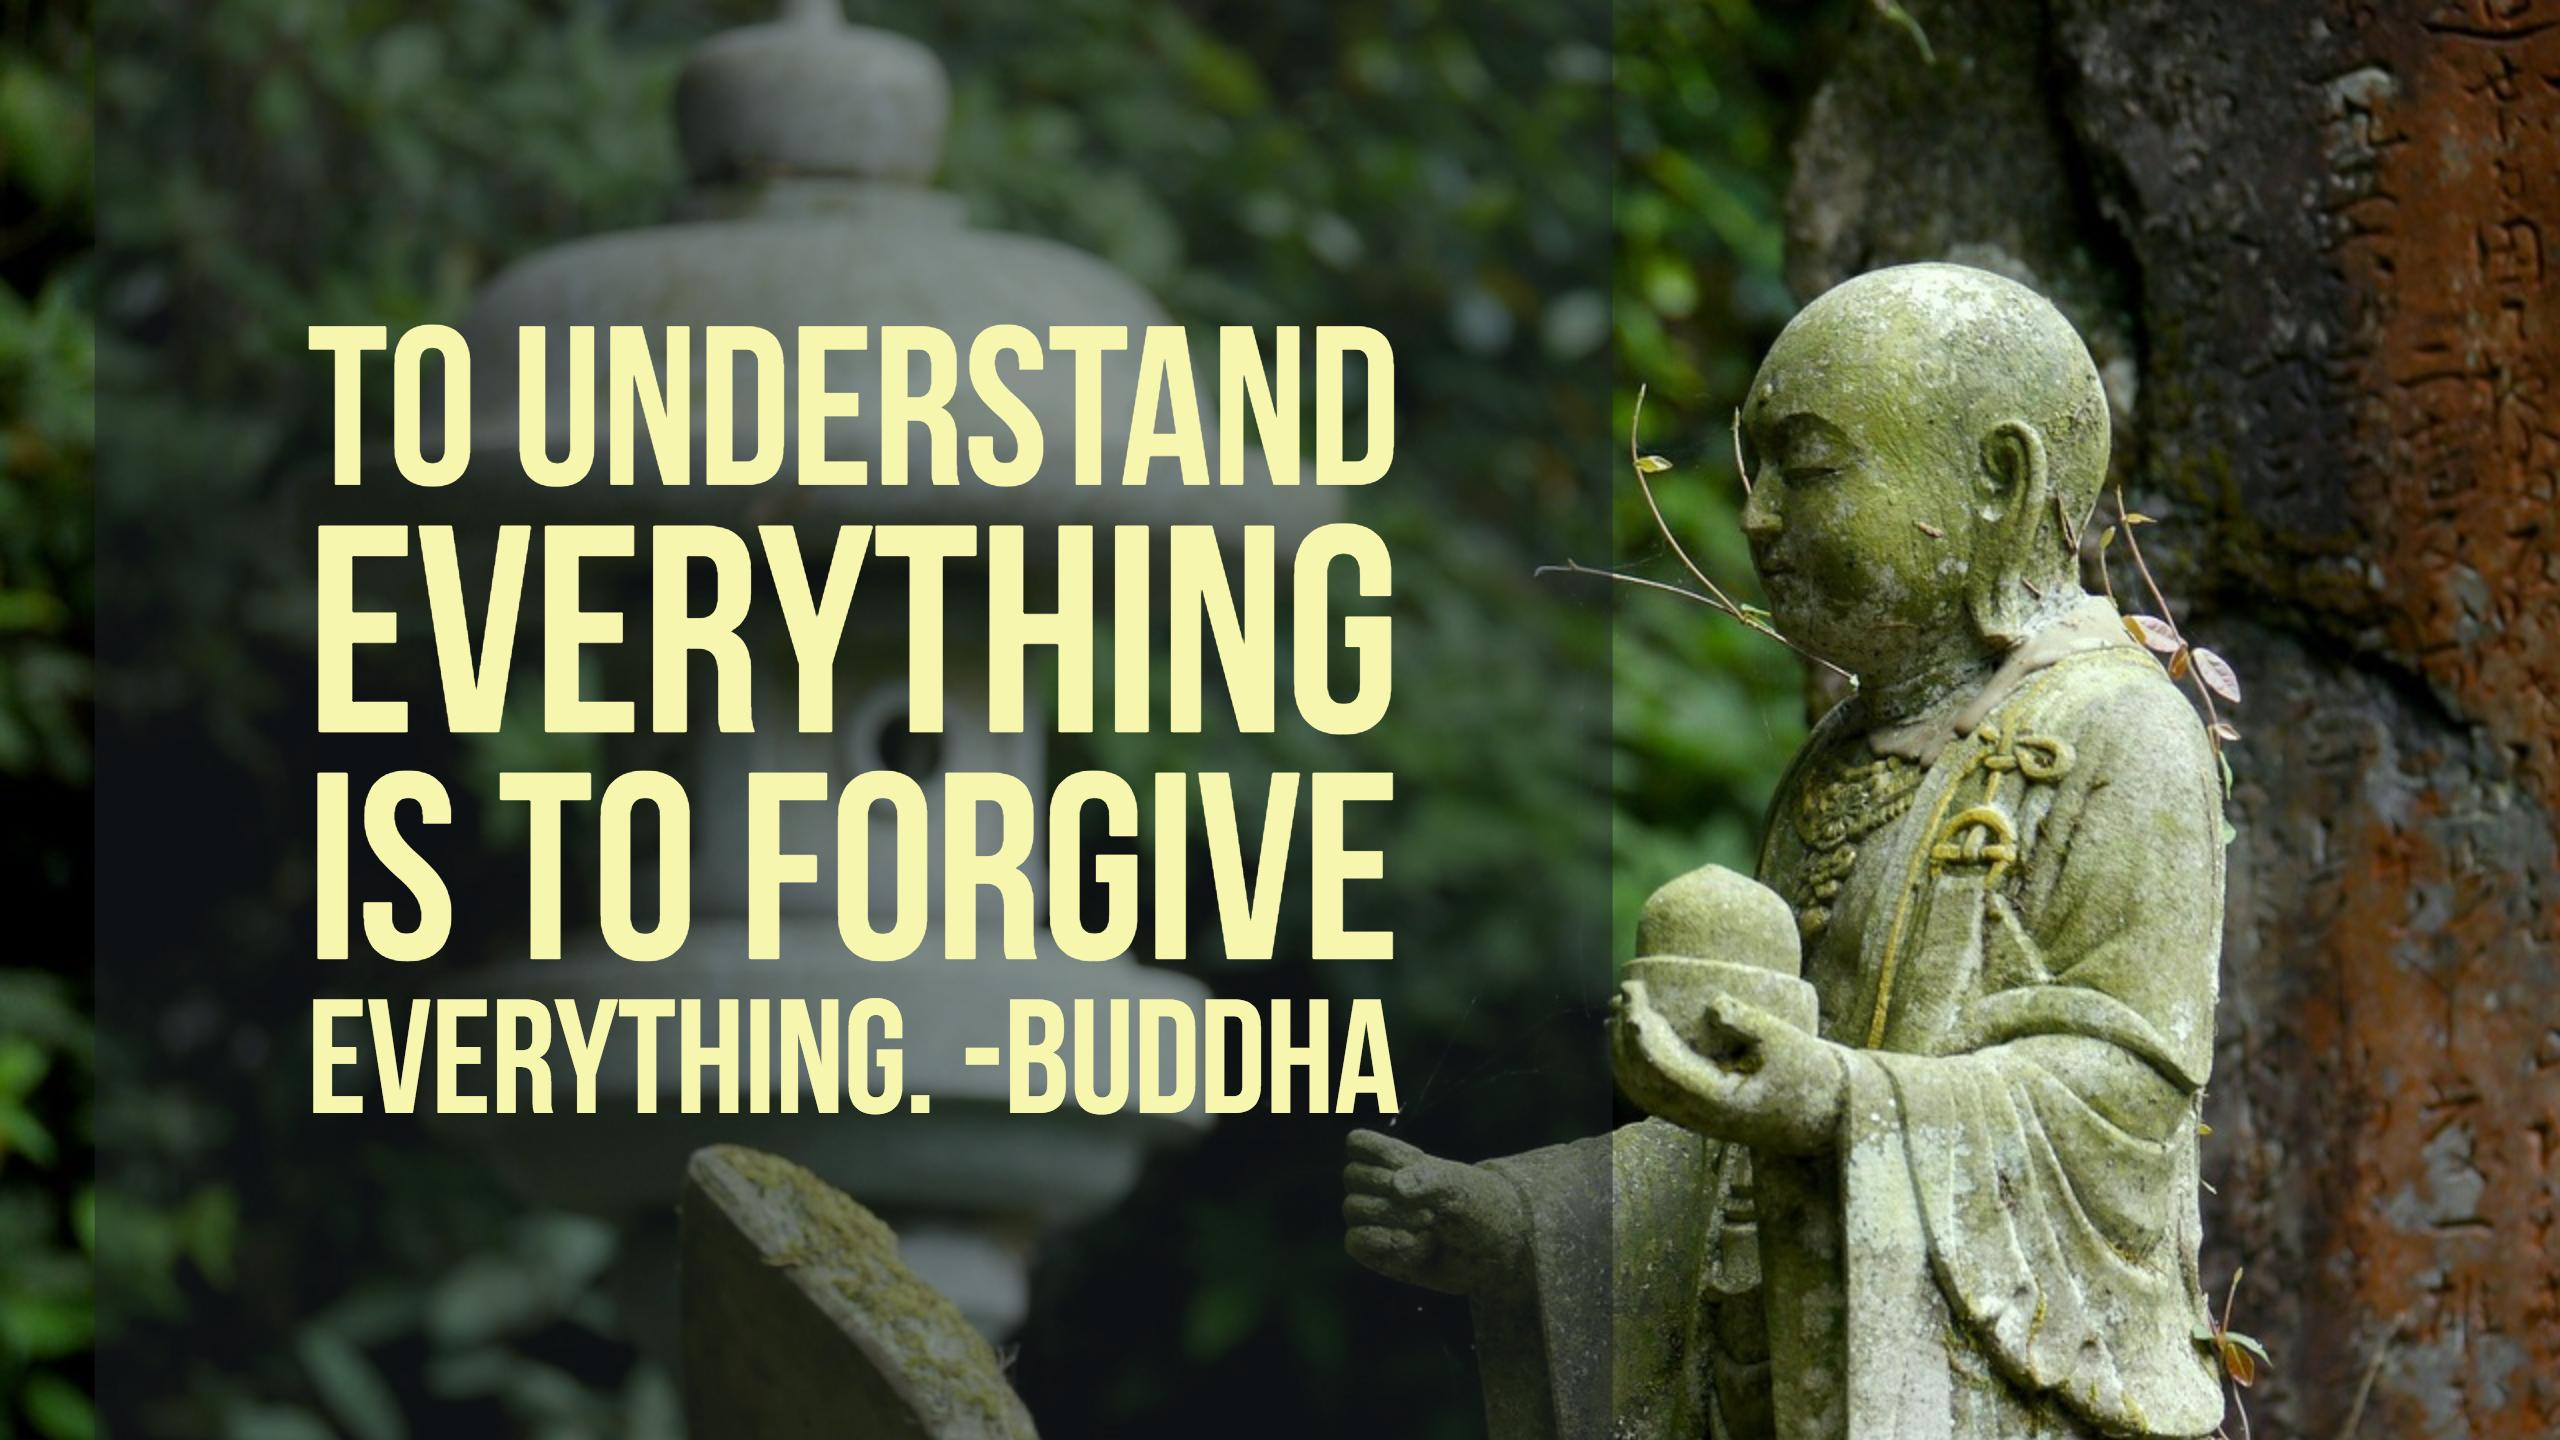 Finding Forgiveness During Challenging Times